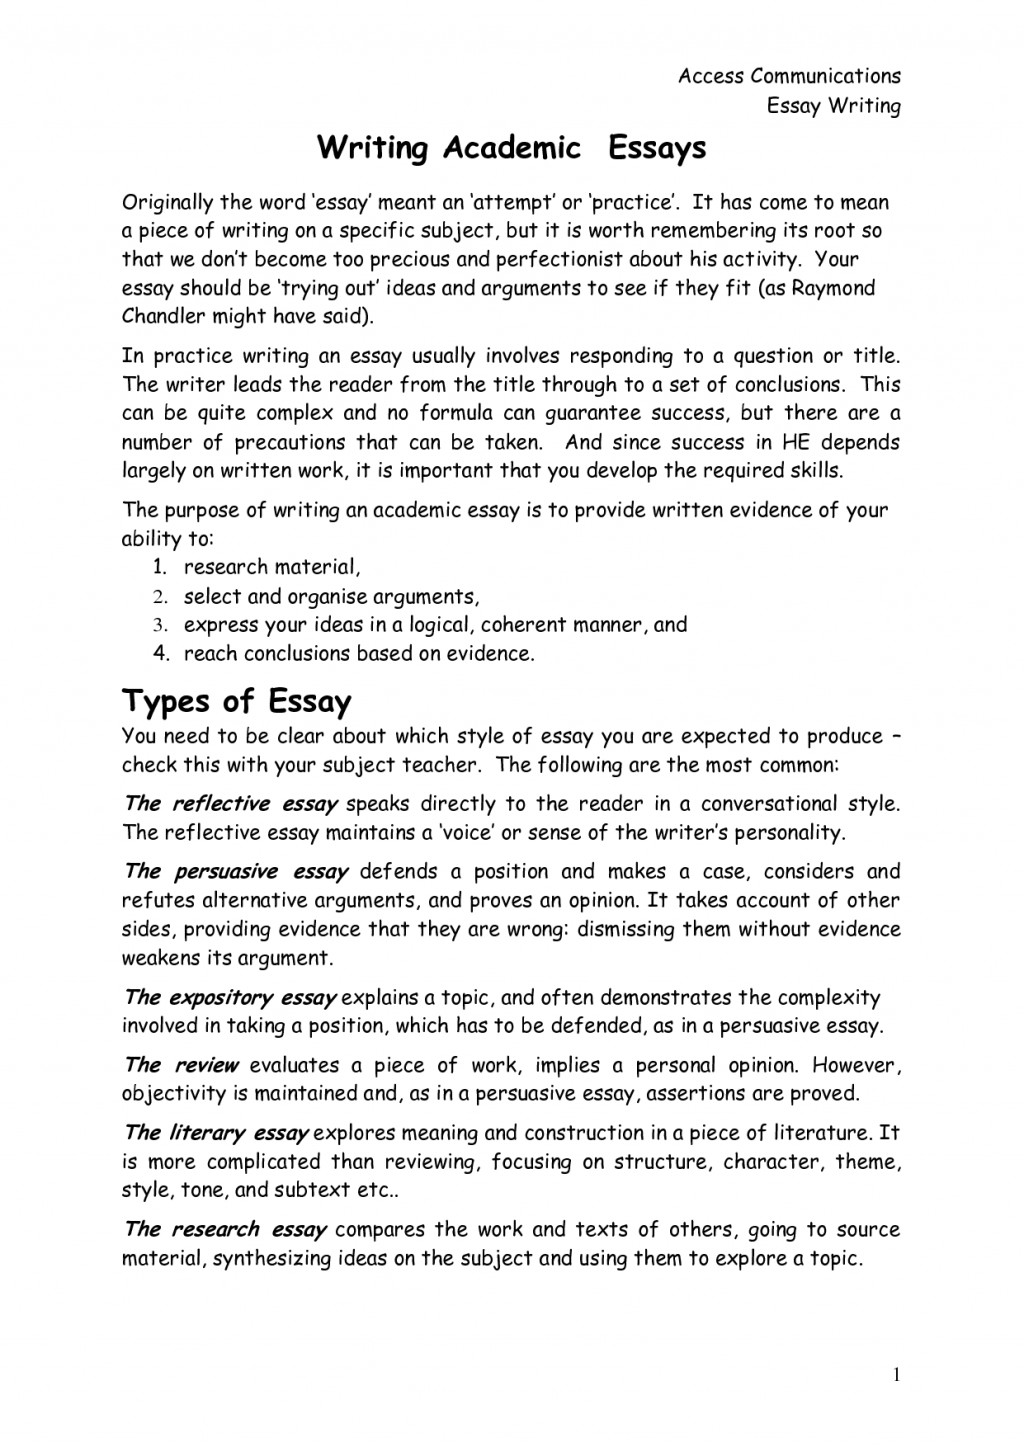 019 Write My Essay For Me Example Surprising College Application Free Online Uk Large